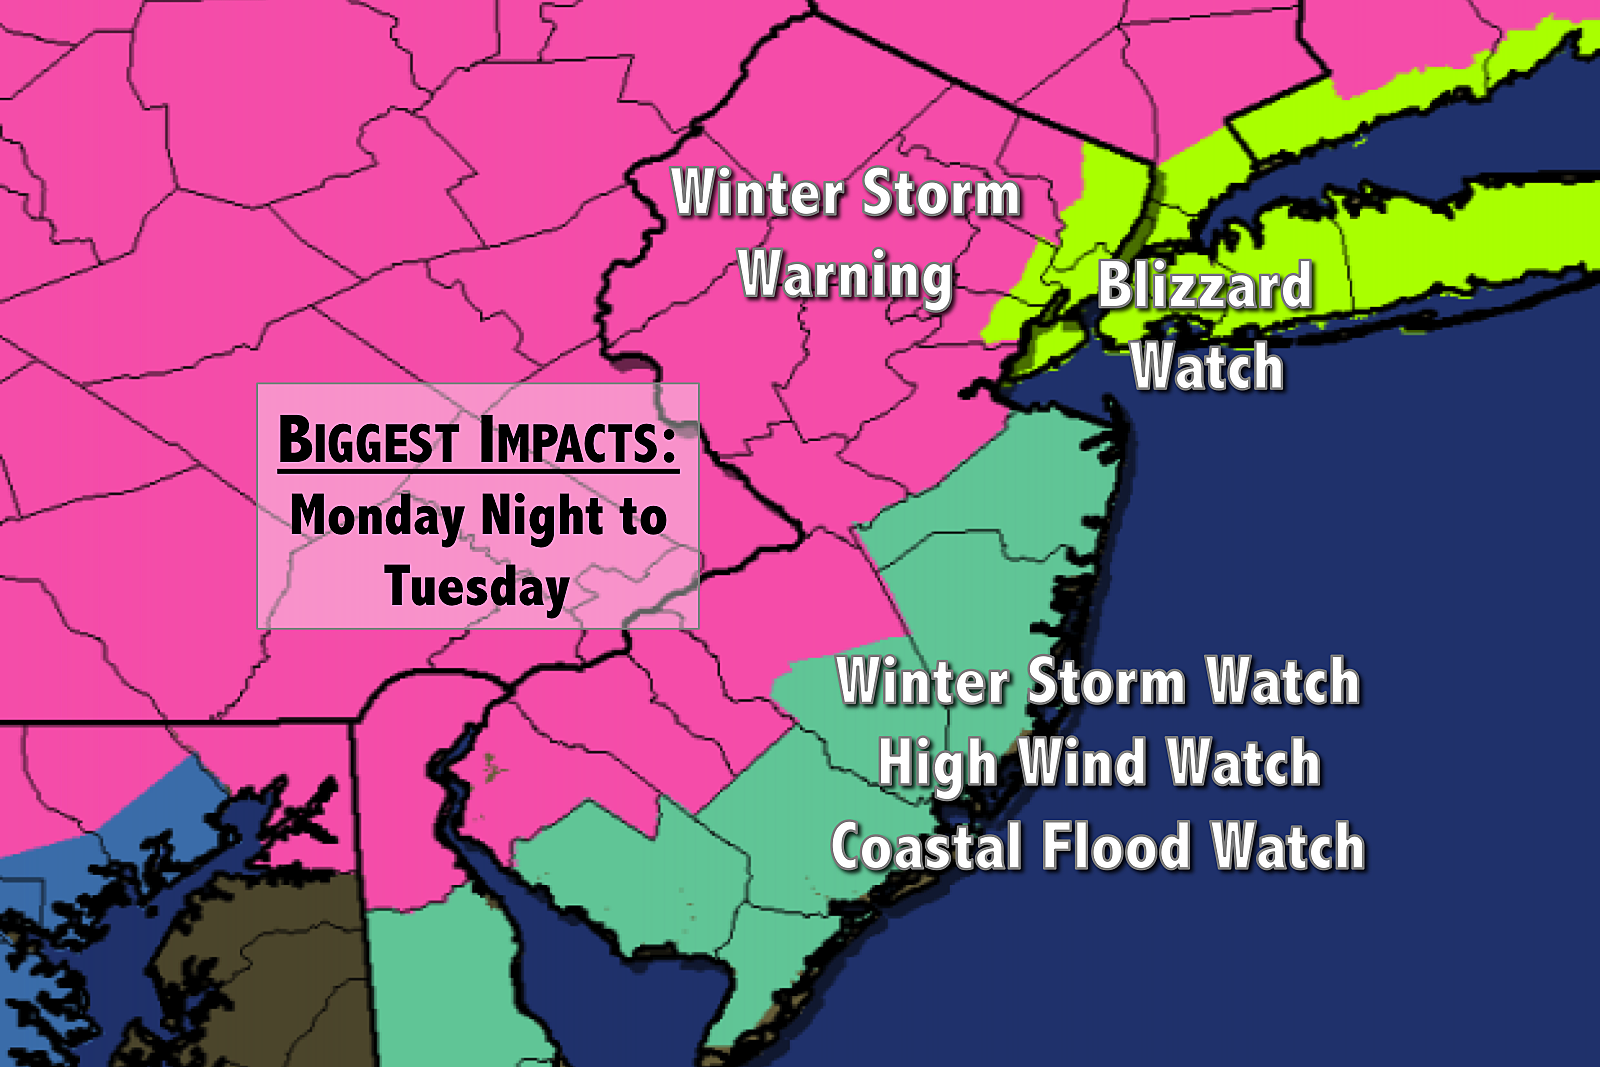 Winter Storm Warning: Winter Storm Warning Issued Ahead Of Tuesday's Snow And Wind